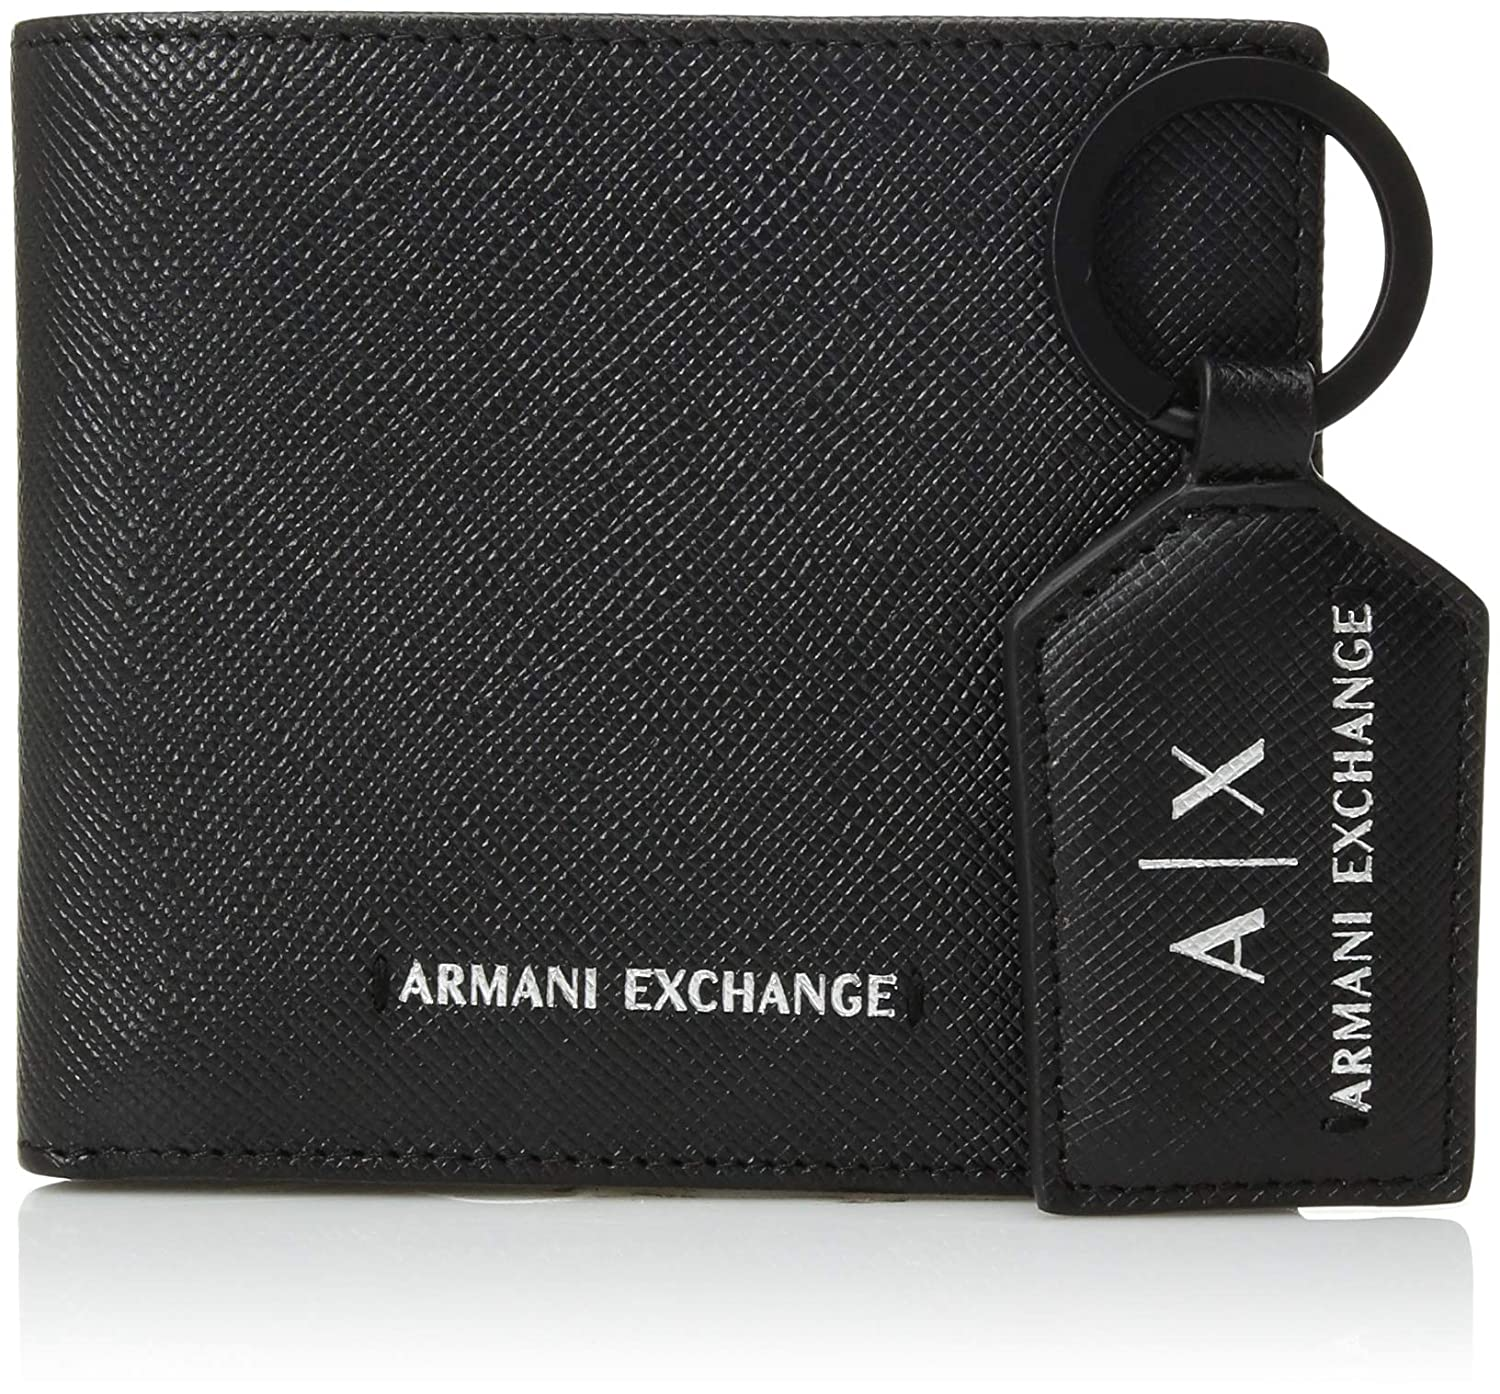 a74424b35c1c Amazon.com: Armani Exchange Men's Wallet & Key Ring Gift Set, black ...